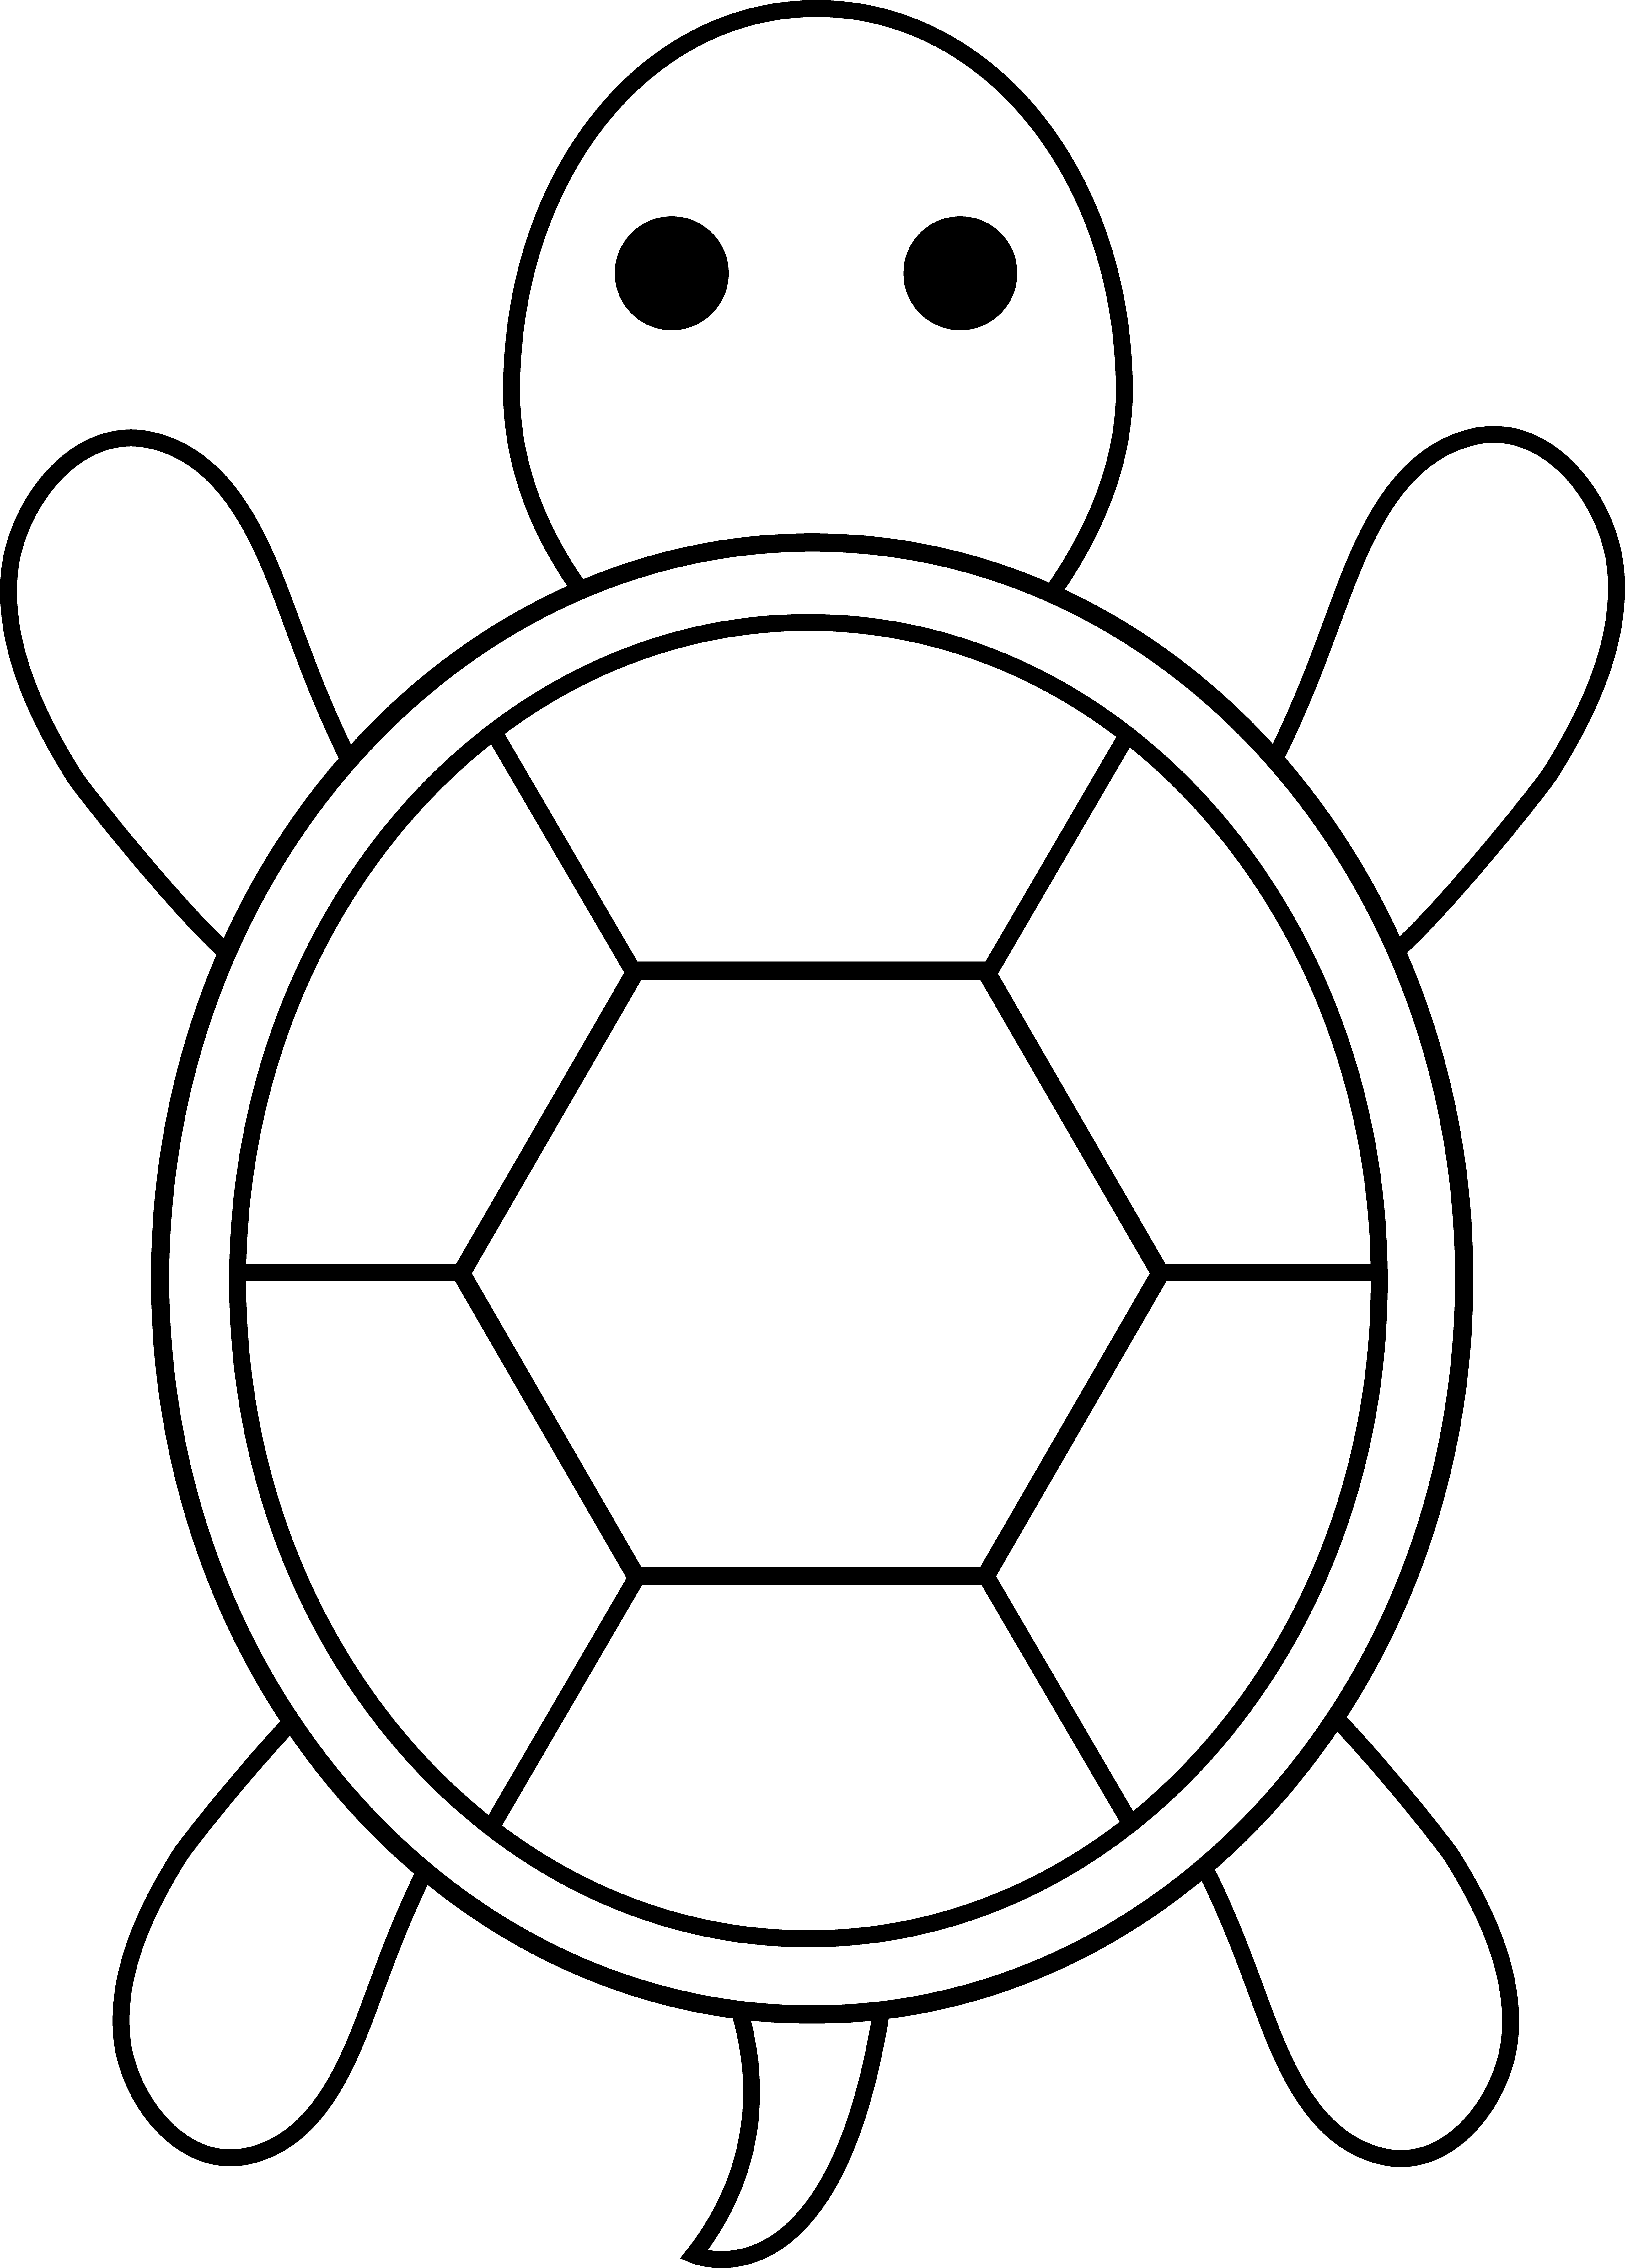 Cute Colorable Turtle Cute Turtle Drawing Easy Transparent